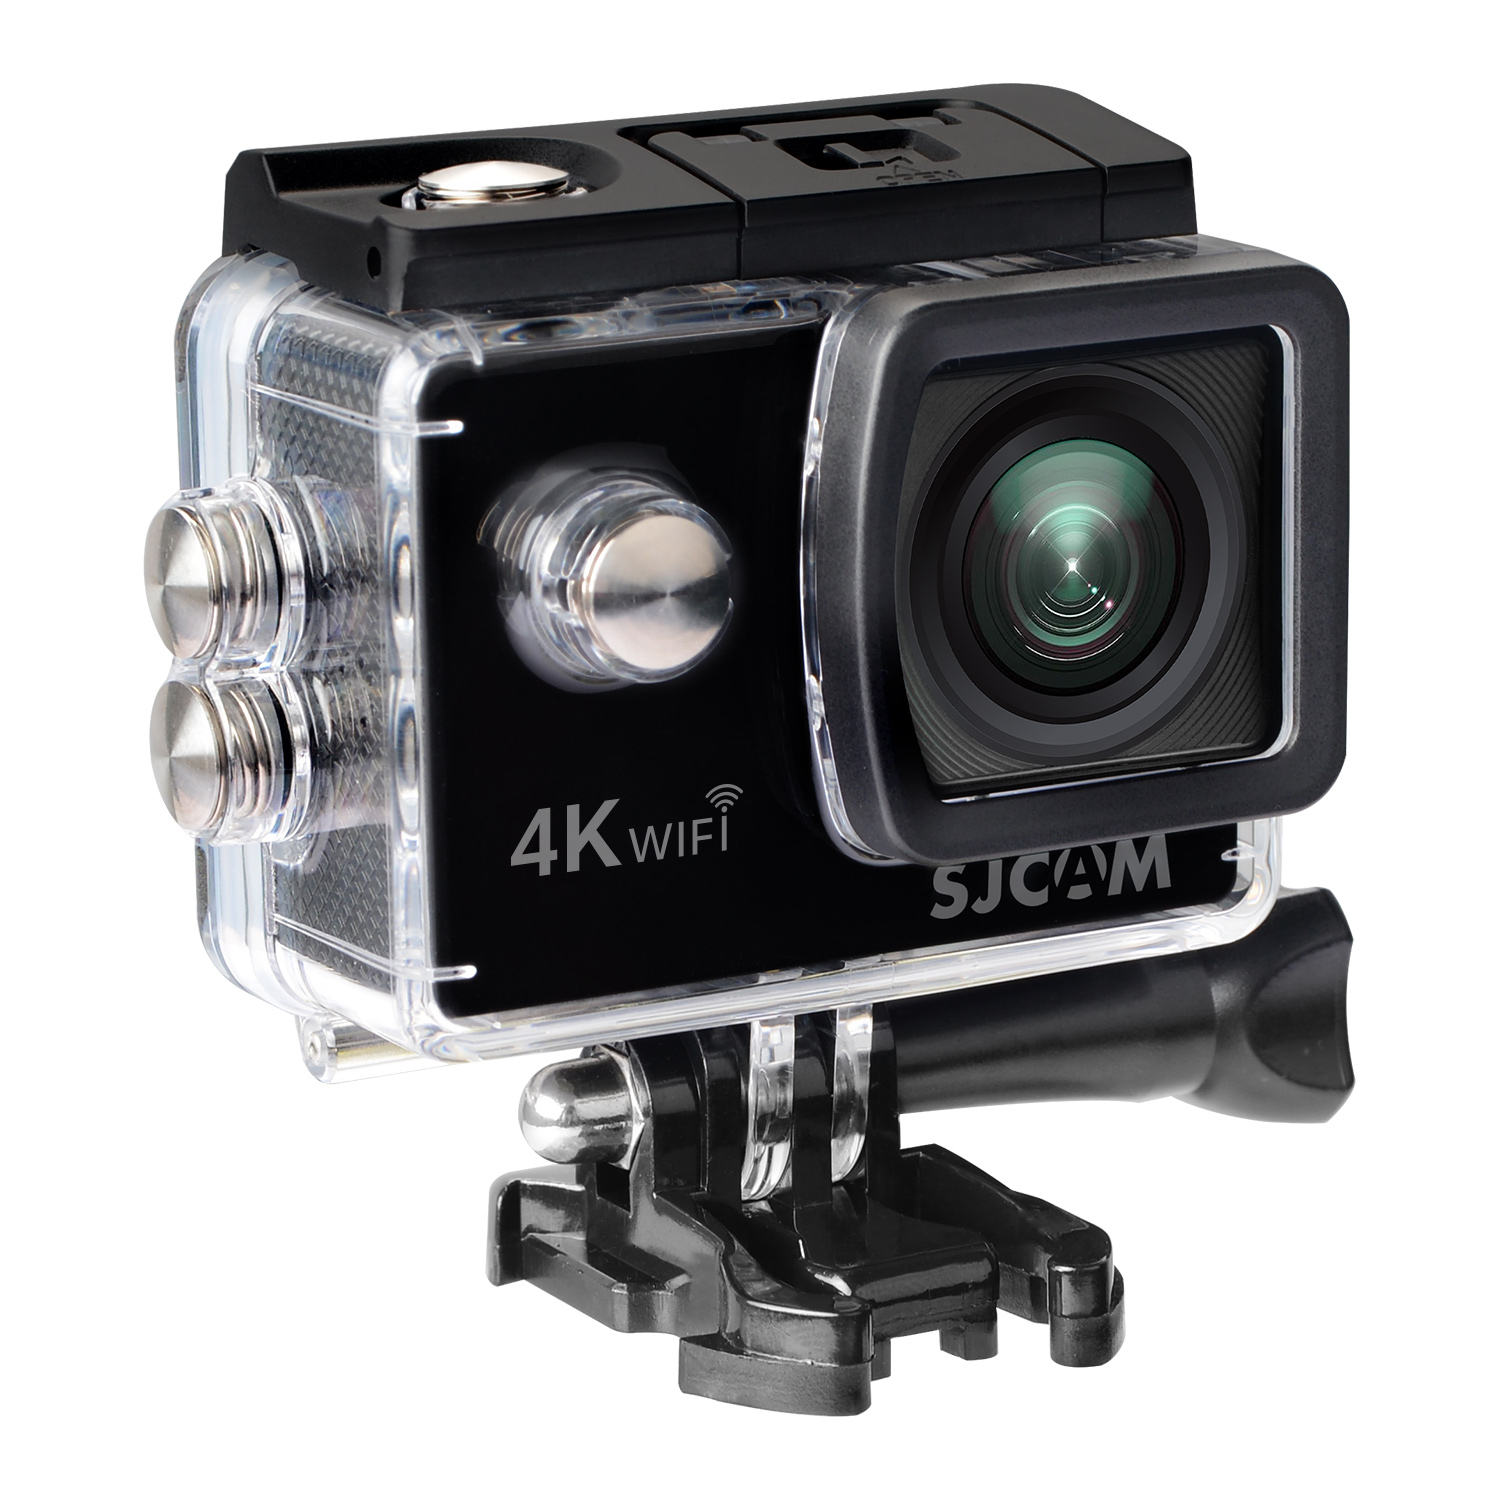 Sj Action Camera 4k Sjcam Sj4000 Air Waterproof with 16mp support wifi digital camcorder 170D 2.0 inch Screen HD DV Cam